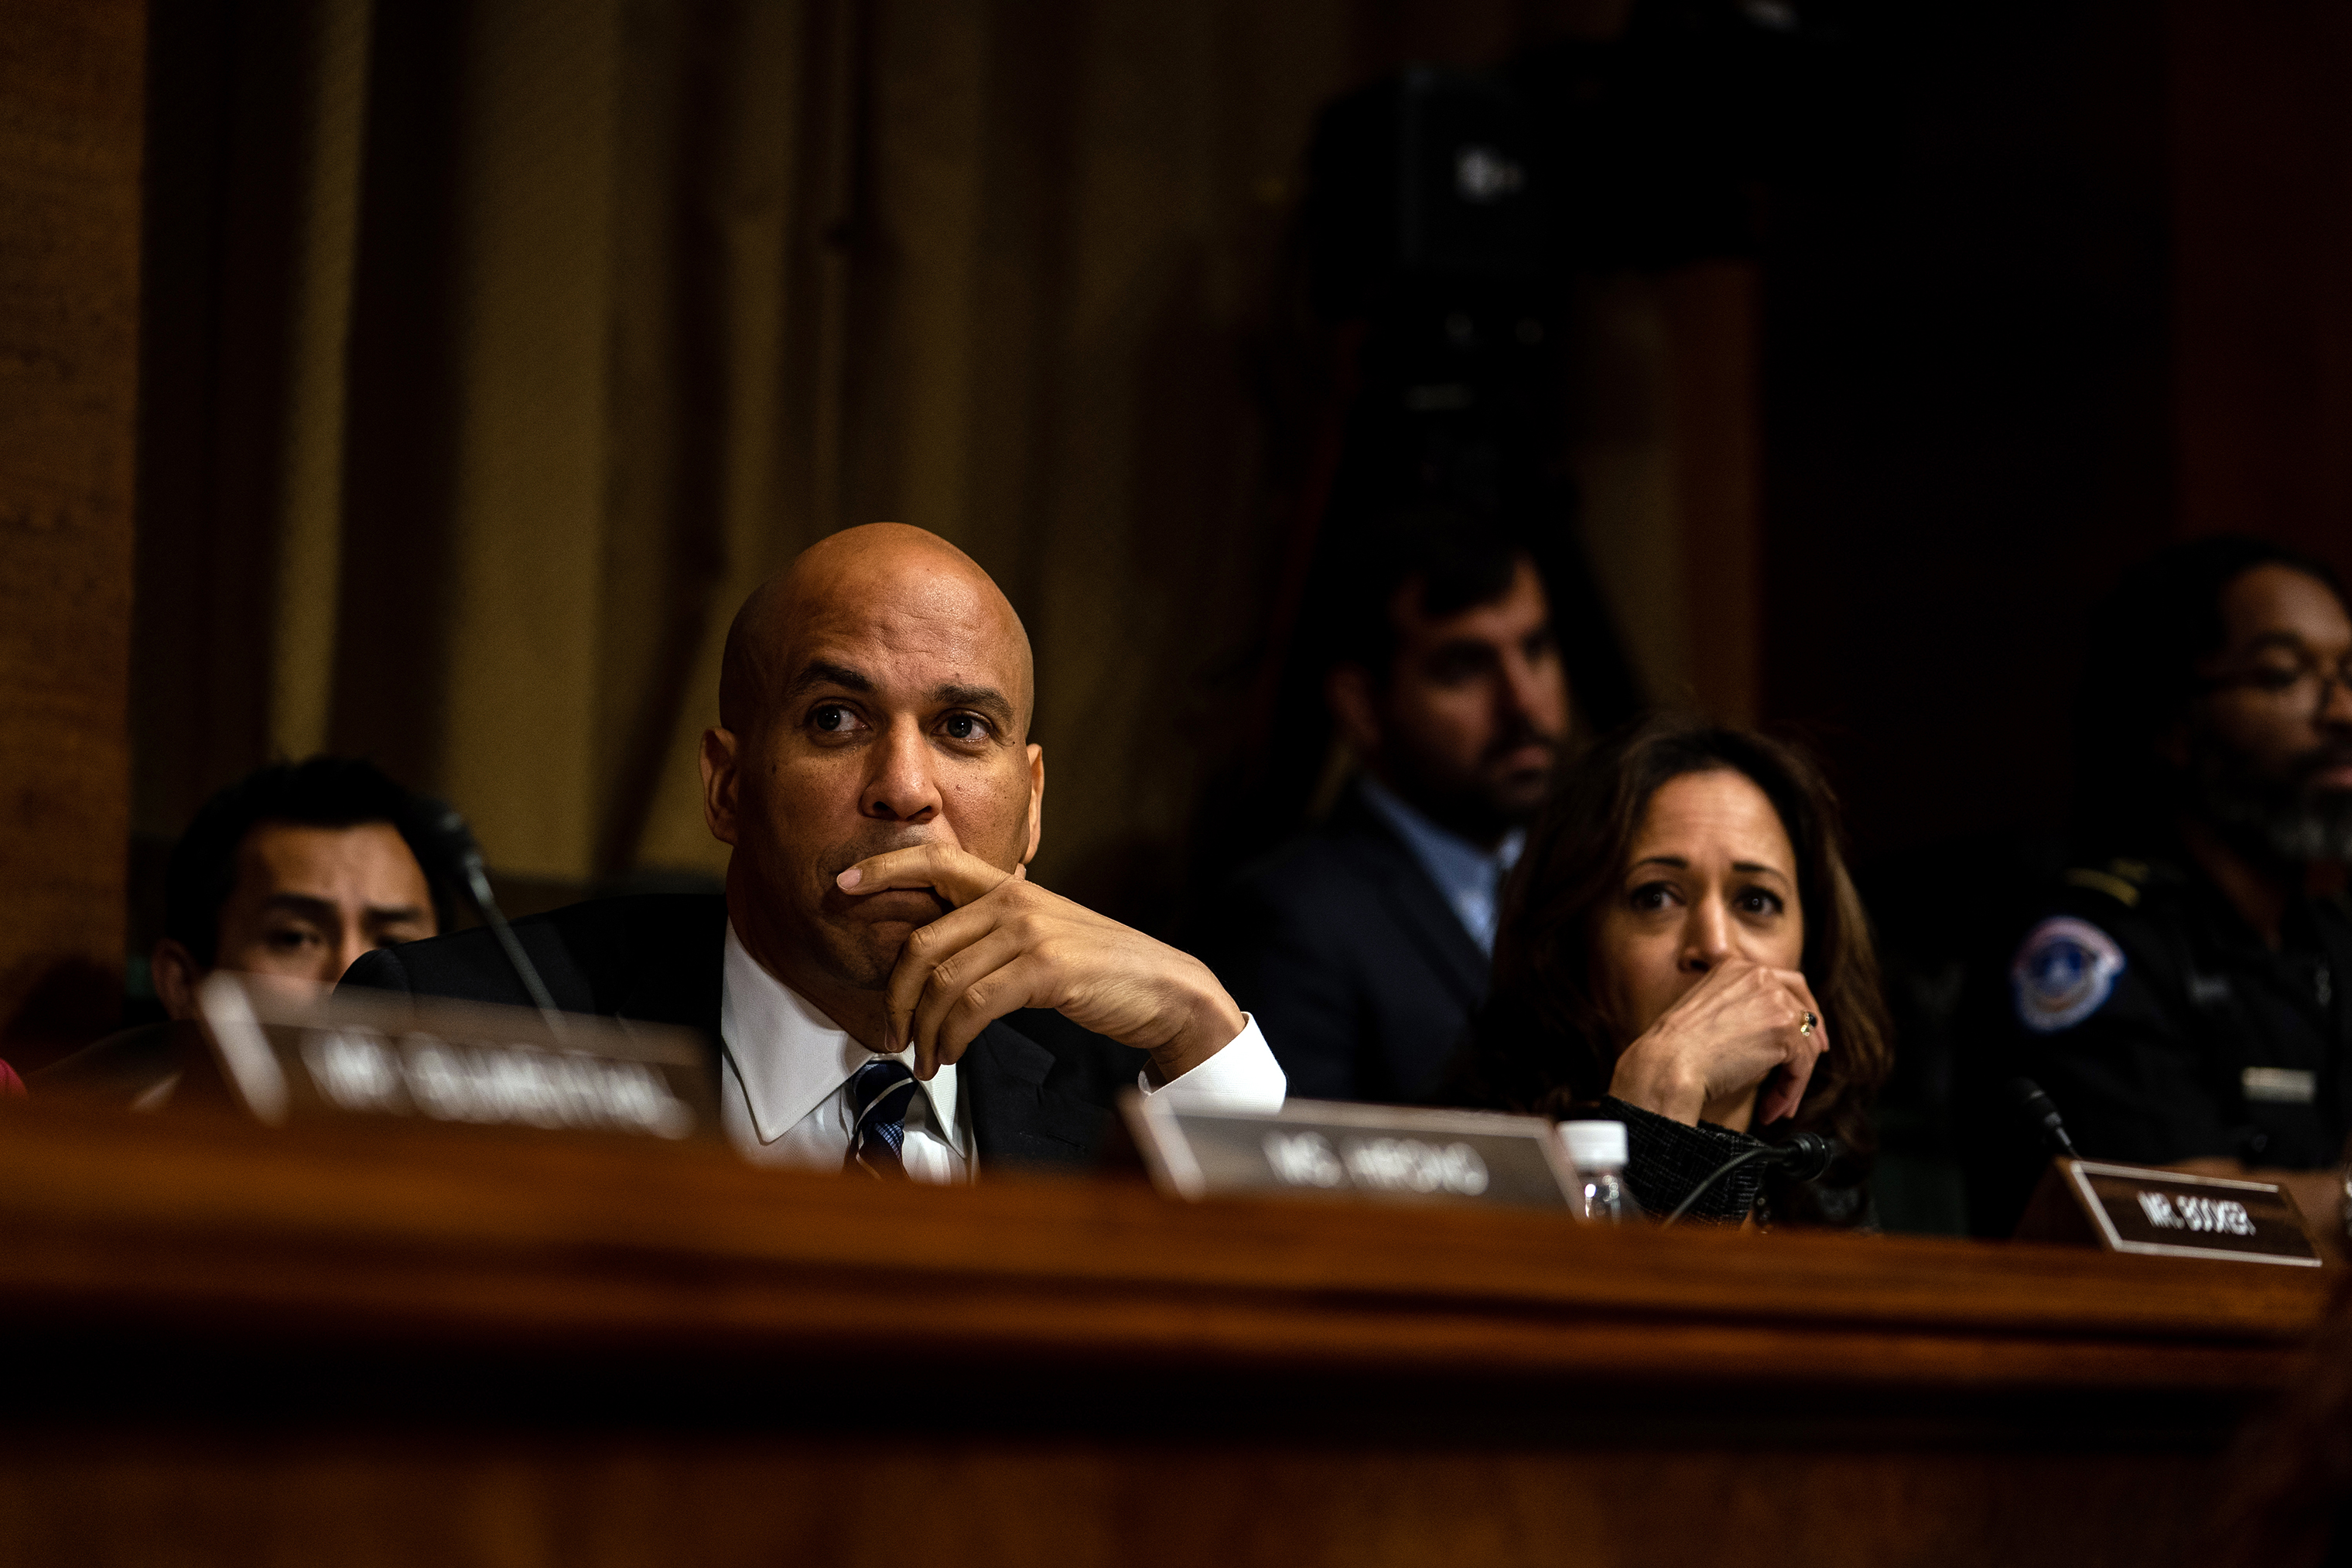 Sens. Cory Booker (D-NJ) and Kamala Harris (D-CA) listen during testimony on Sept. 27.